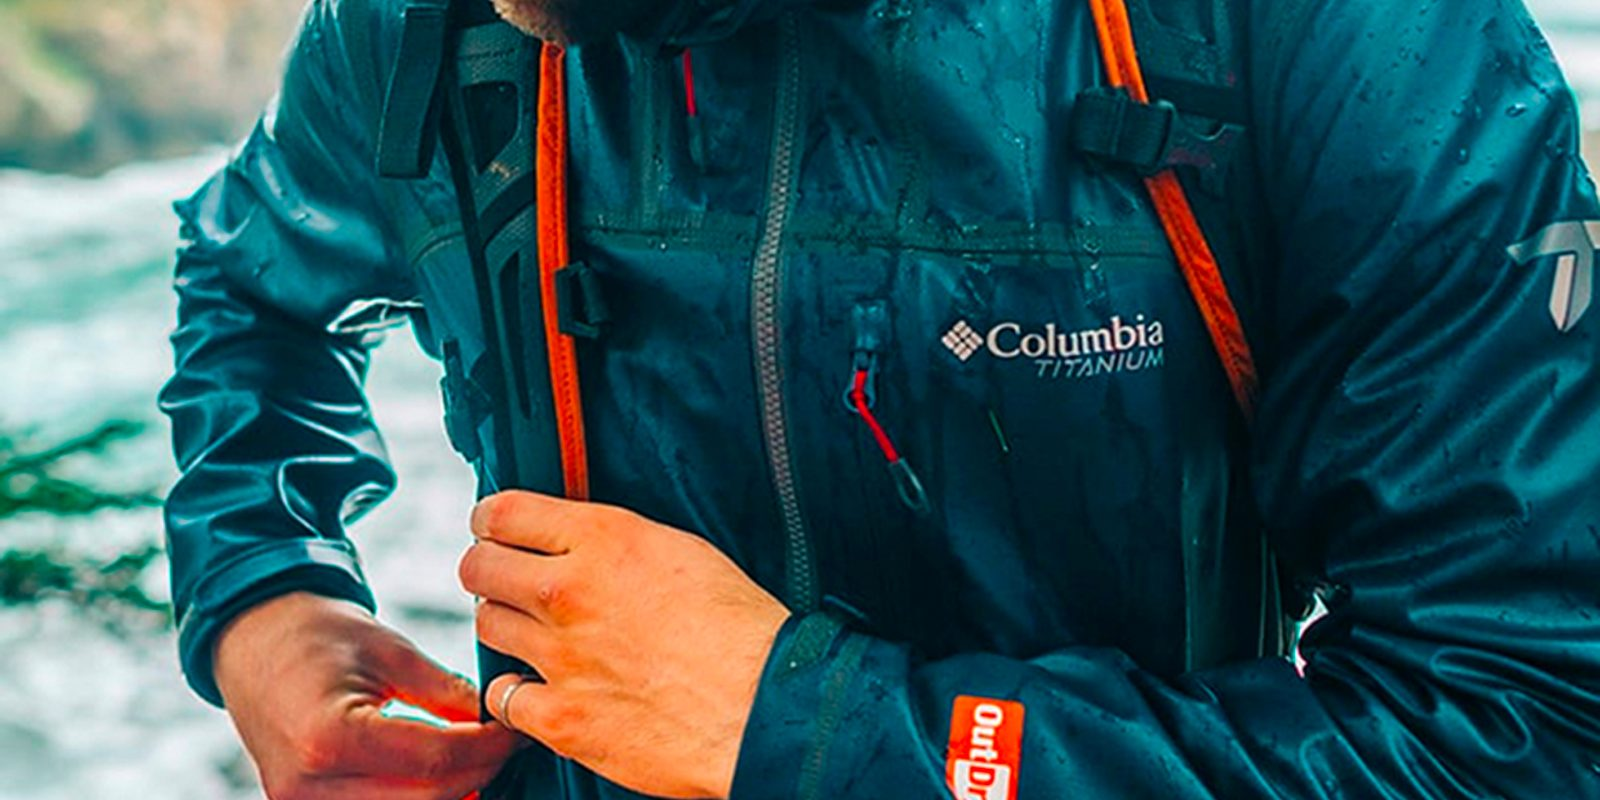 Columbia's offering 50% off popular jackets, vests, boots, more from $18